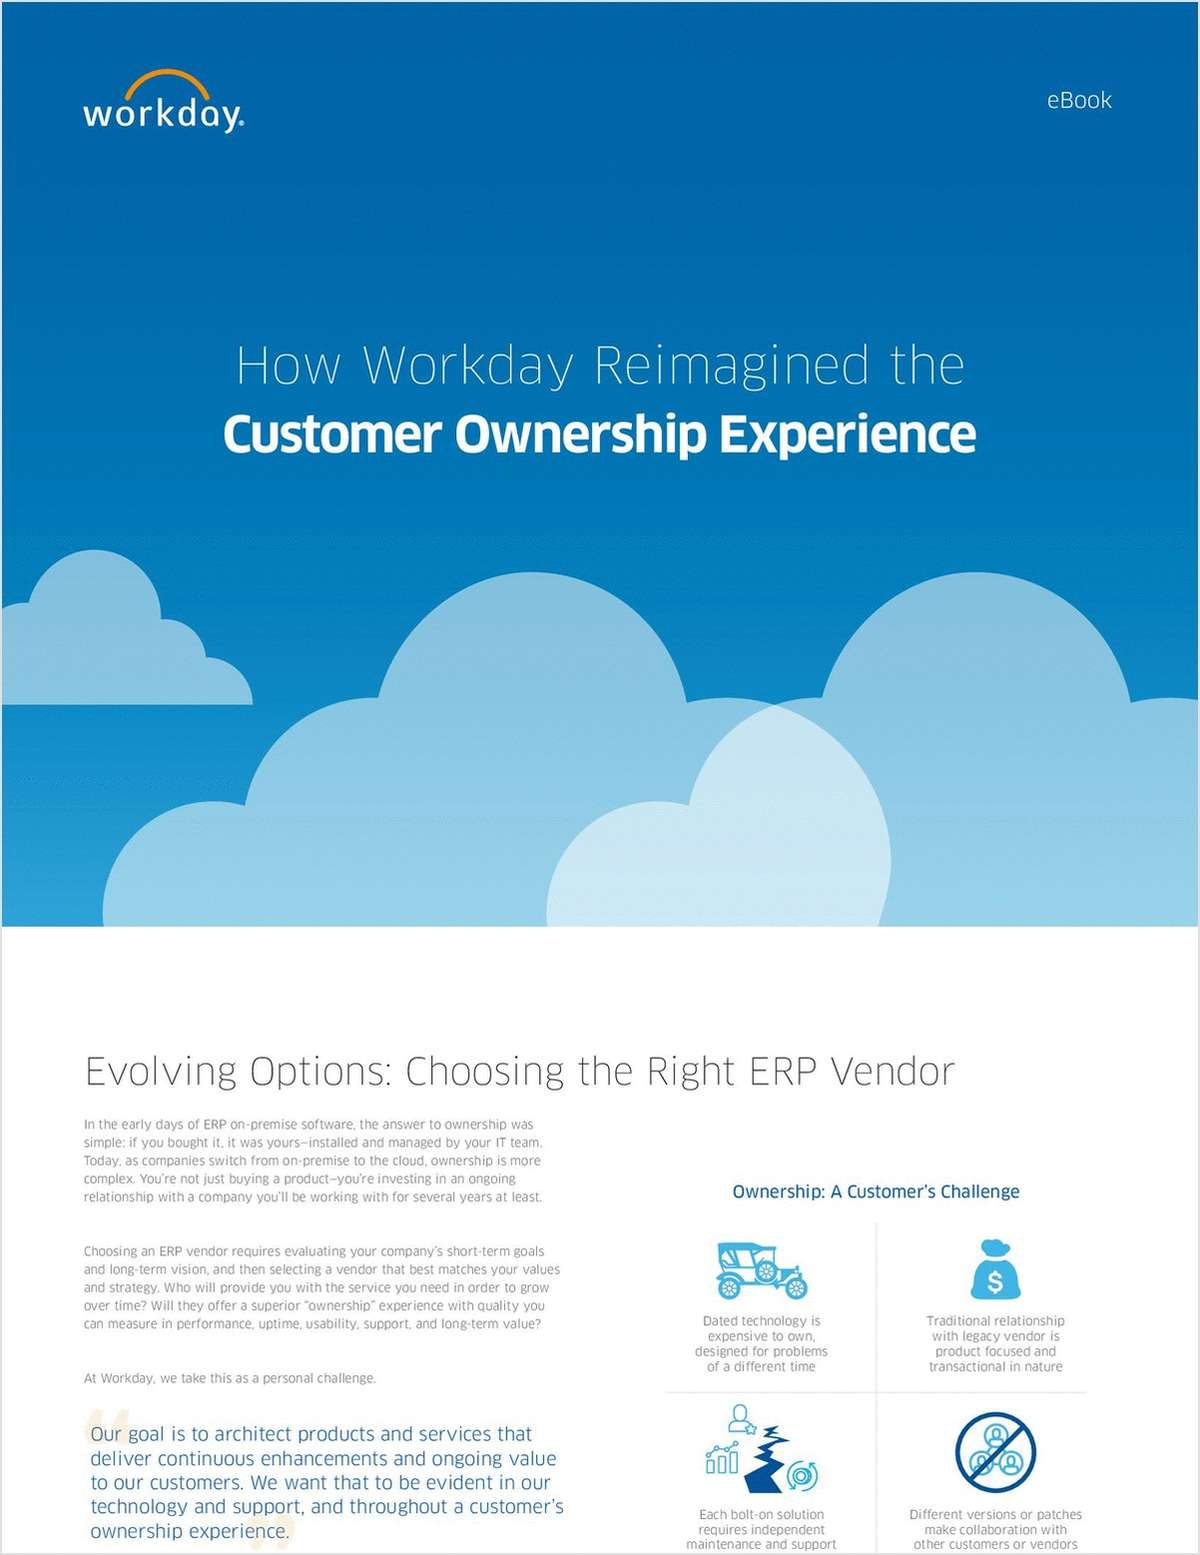 How Workday Reimagined the Customer Ownership Experience